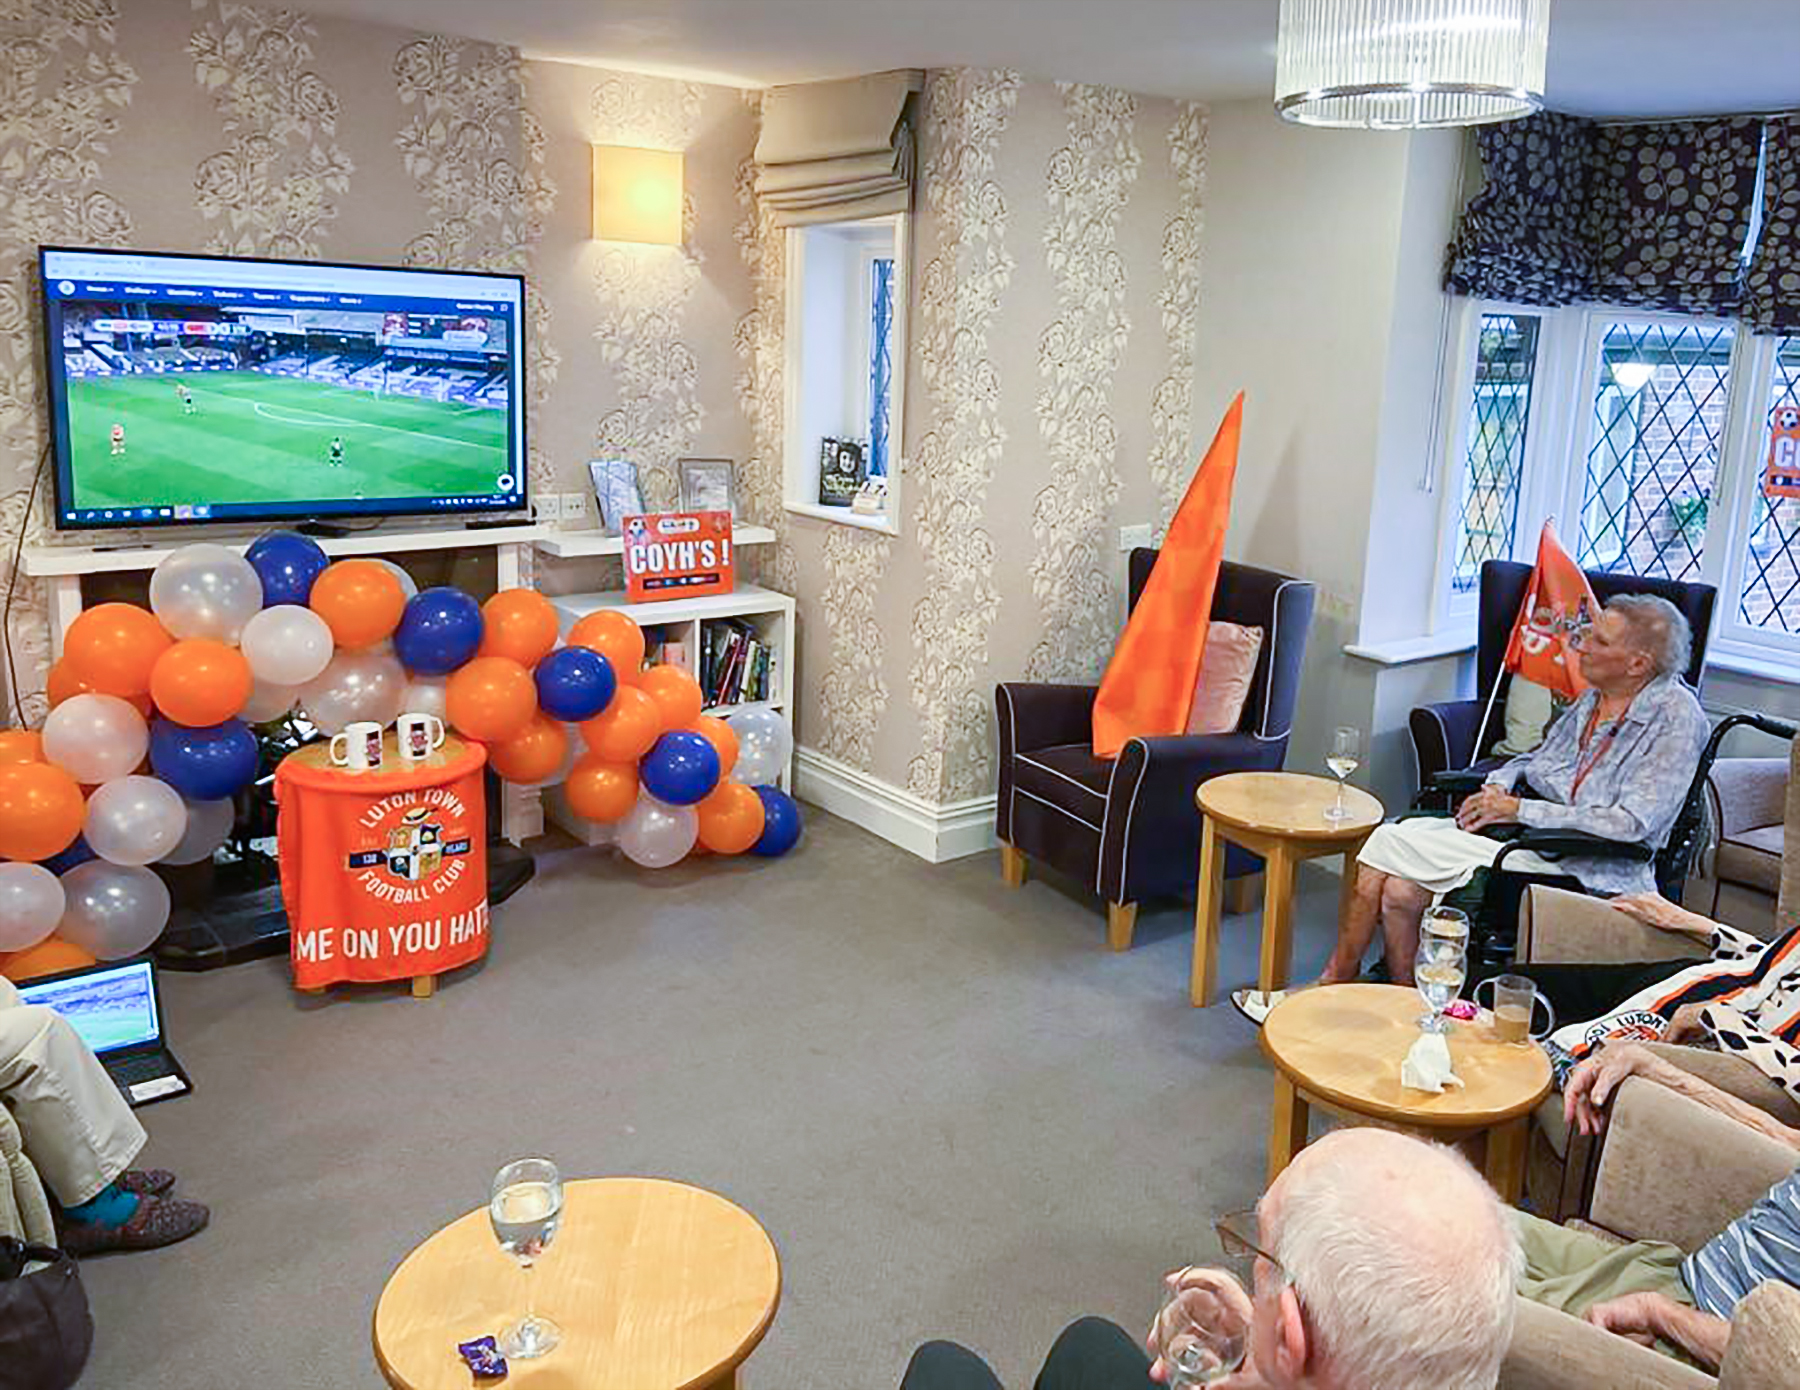 Care home residents watching the football match on TV in the lounge